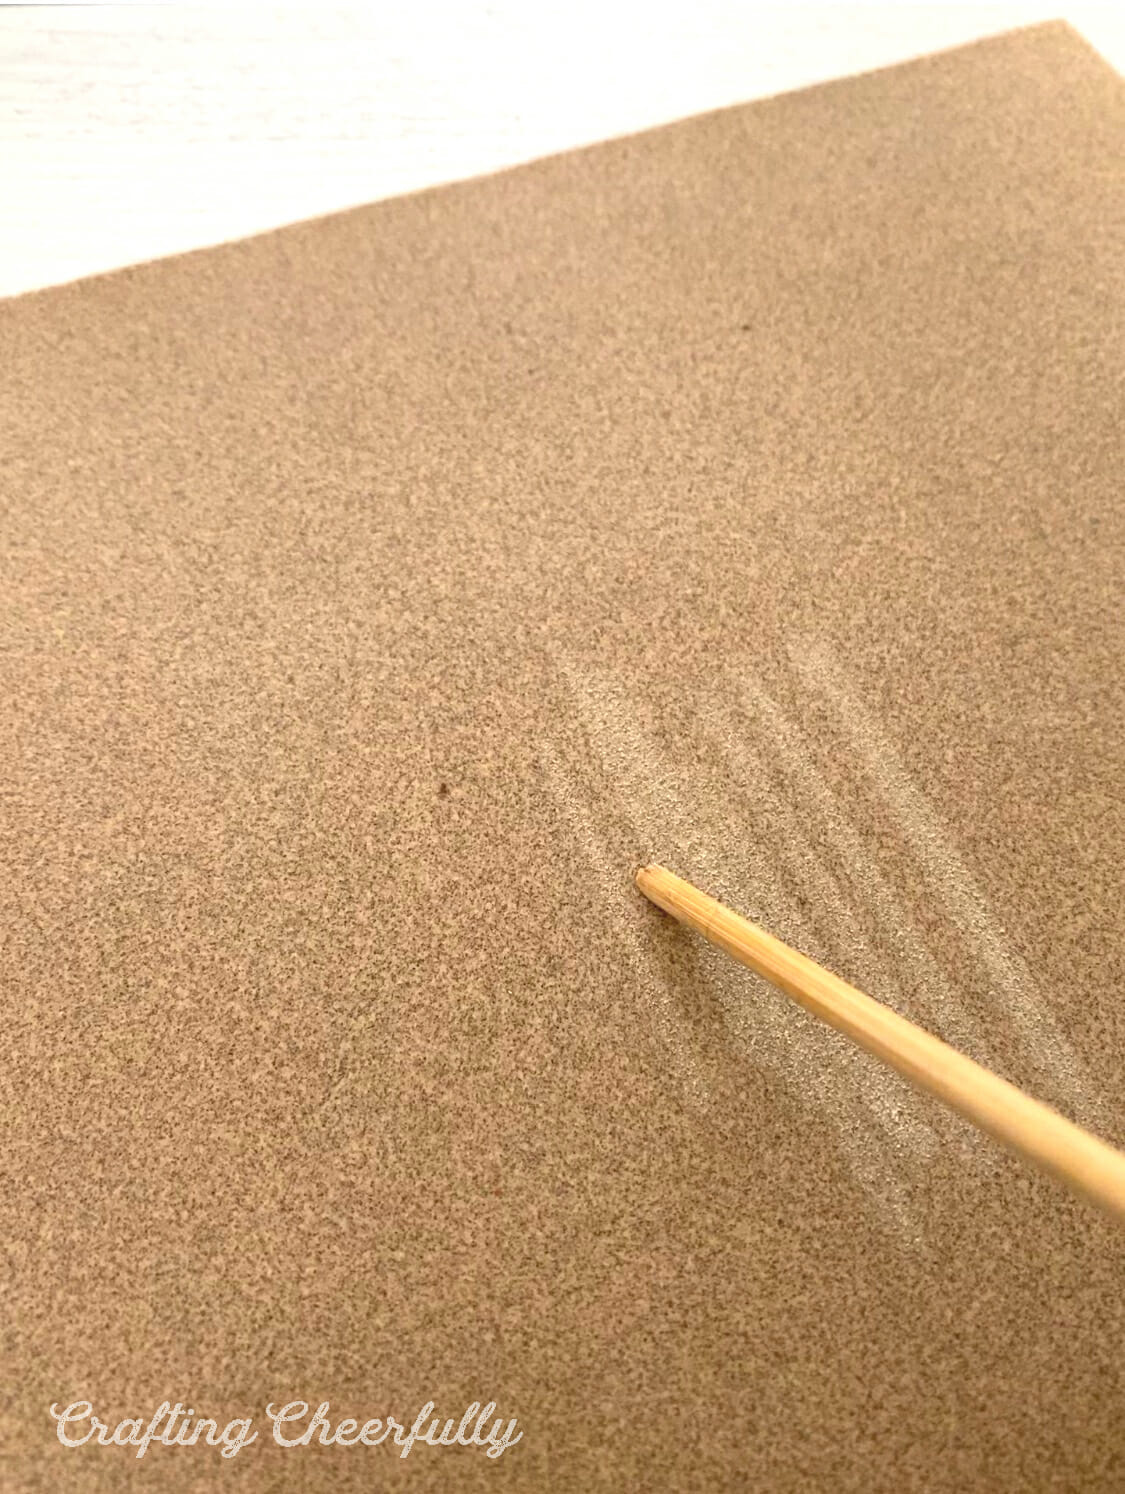 A dowel is rubbed against sand paper.